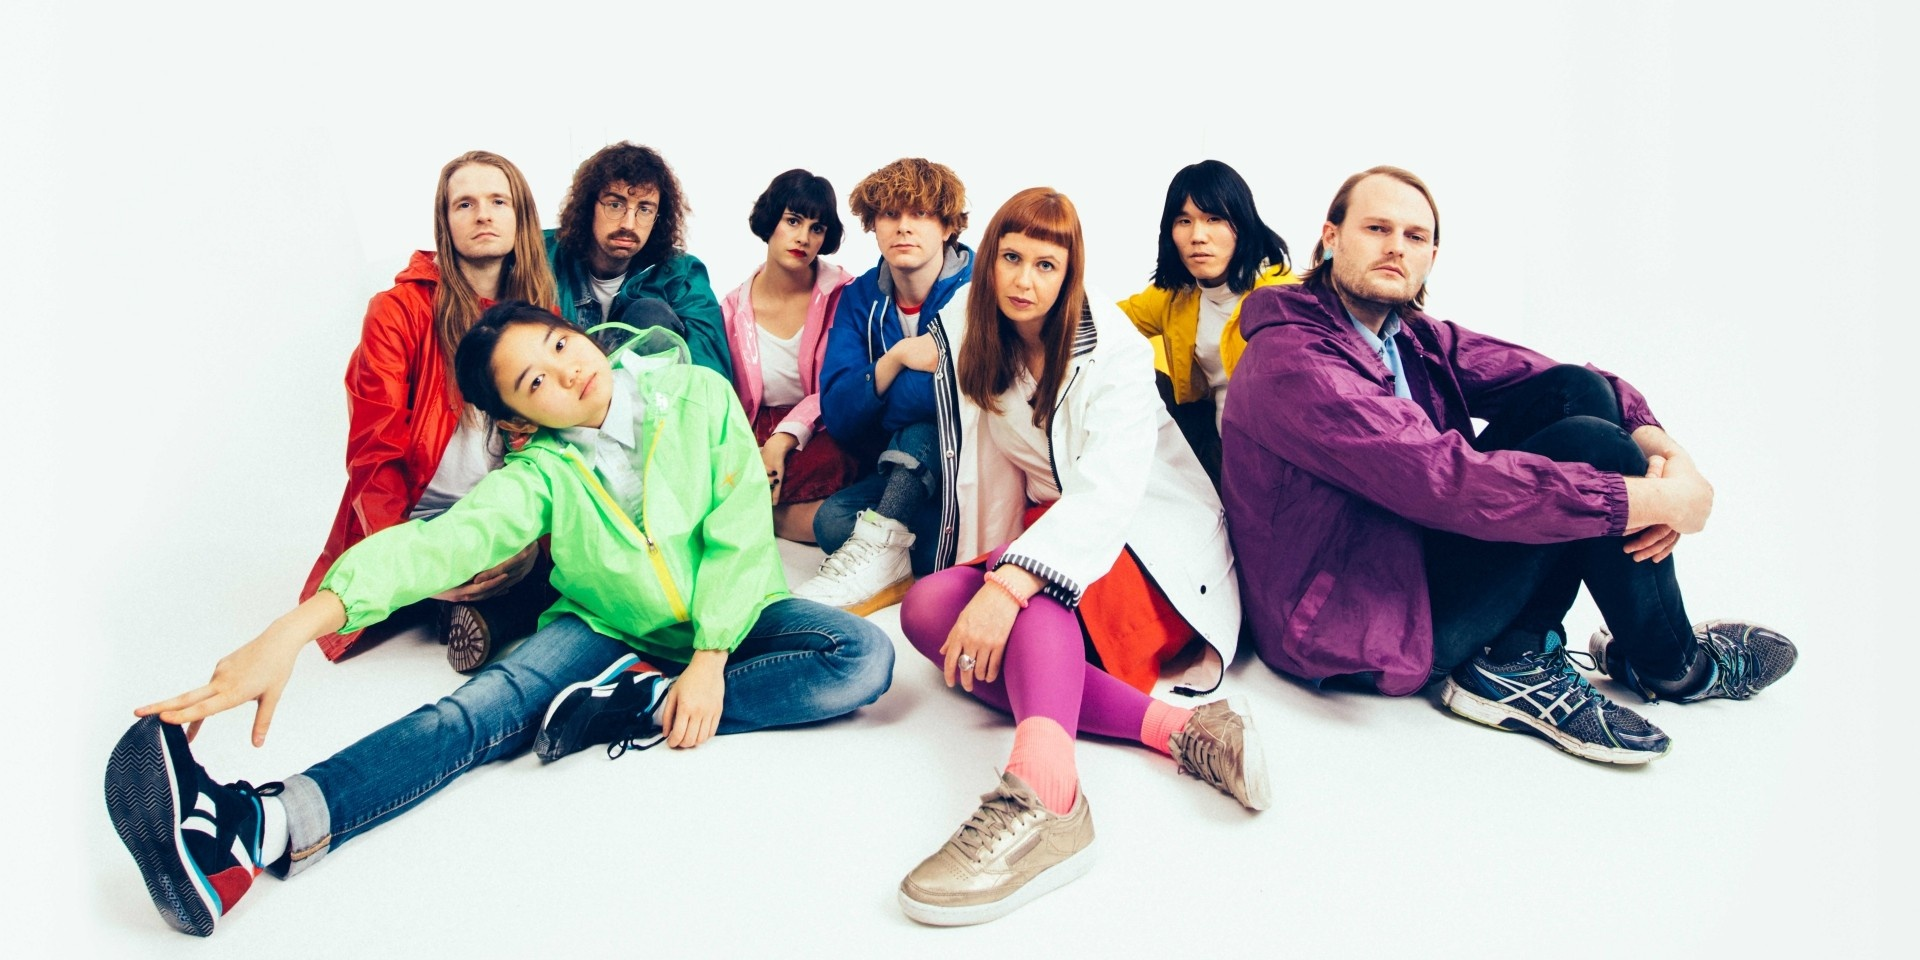 Superorganism to play in Singapore next January